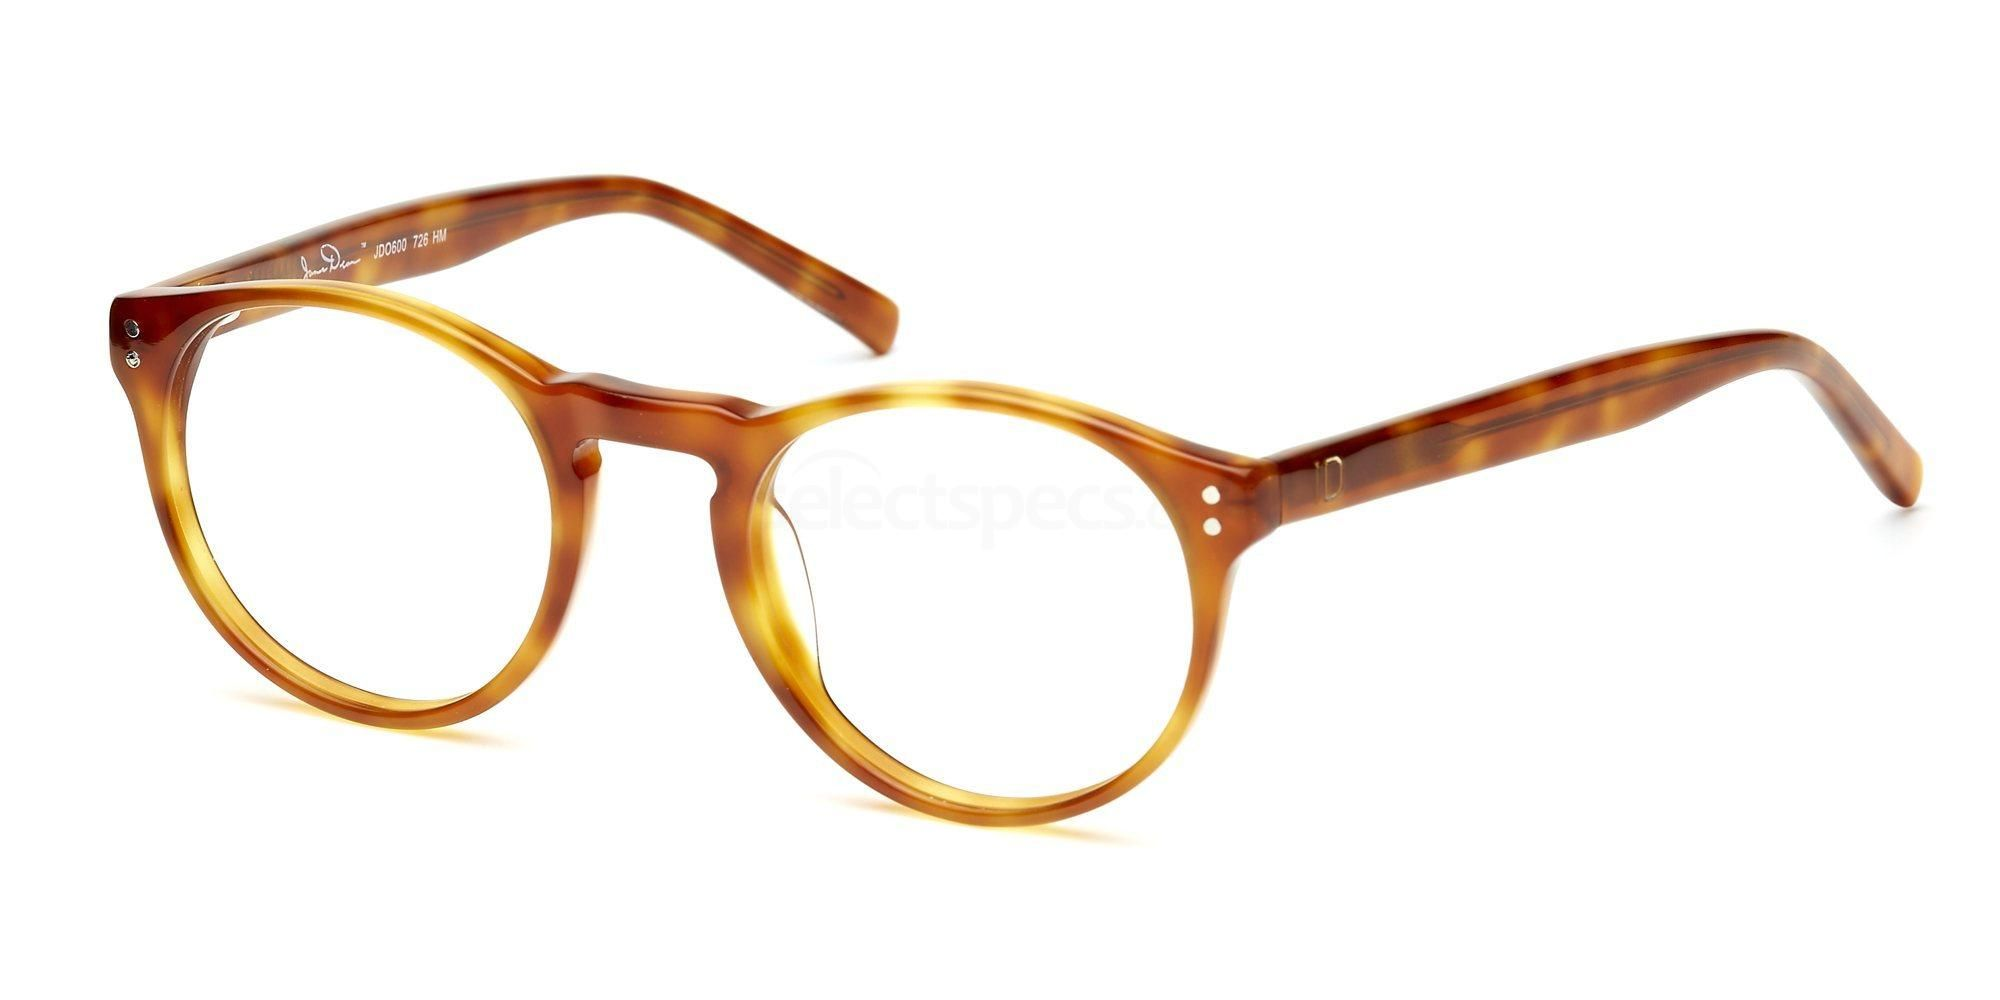 005d8acba4d James Dean Eyewear  Get the look of the 1950s Legend